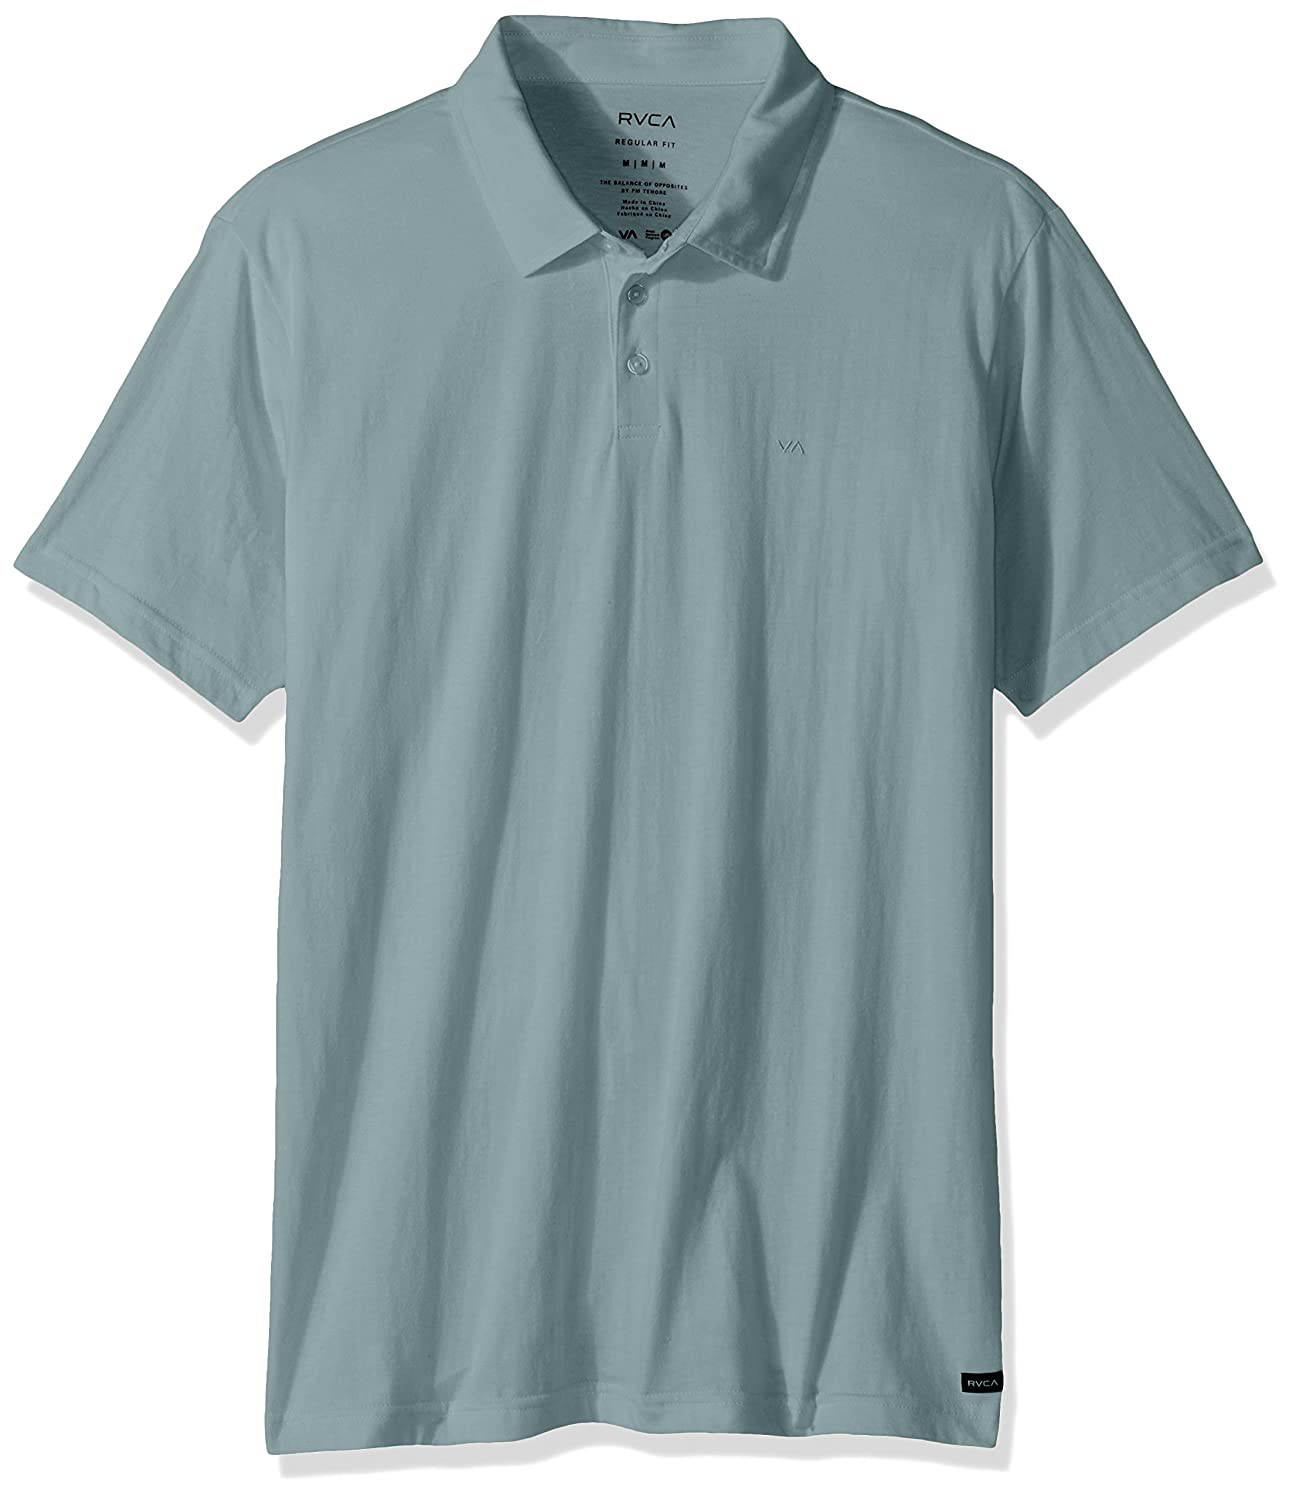 590b74d6c78bb Top 10 wholesale Rvca Polo - Chinabrands.com